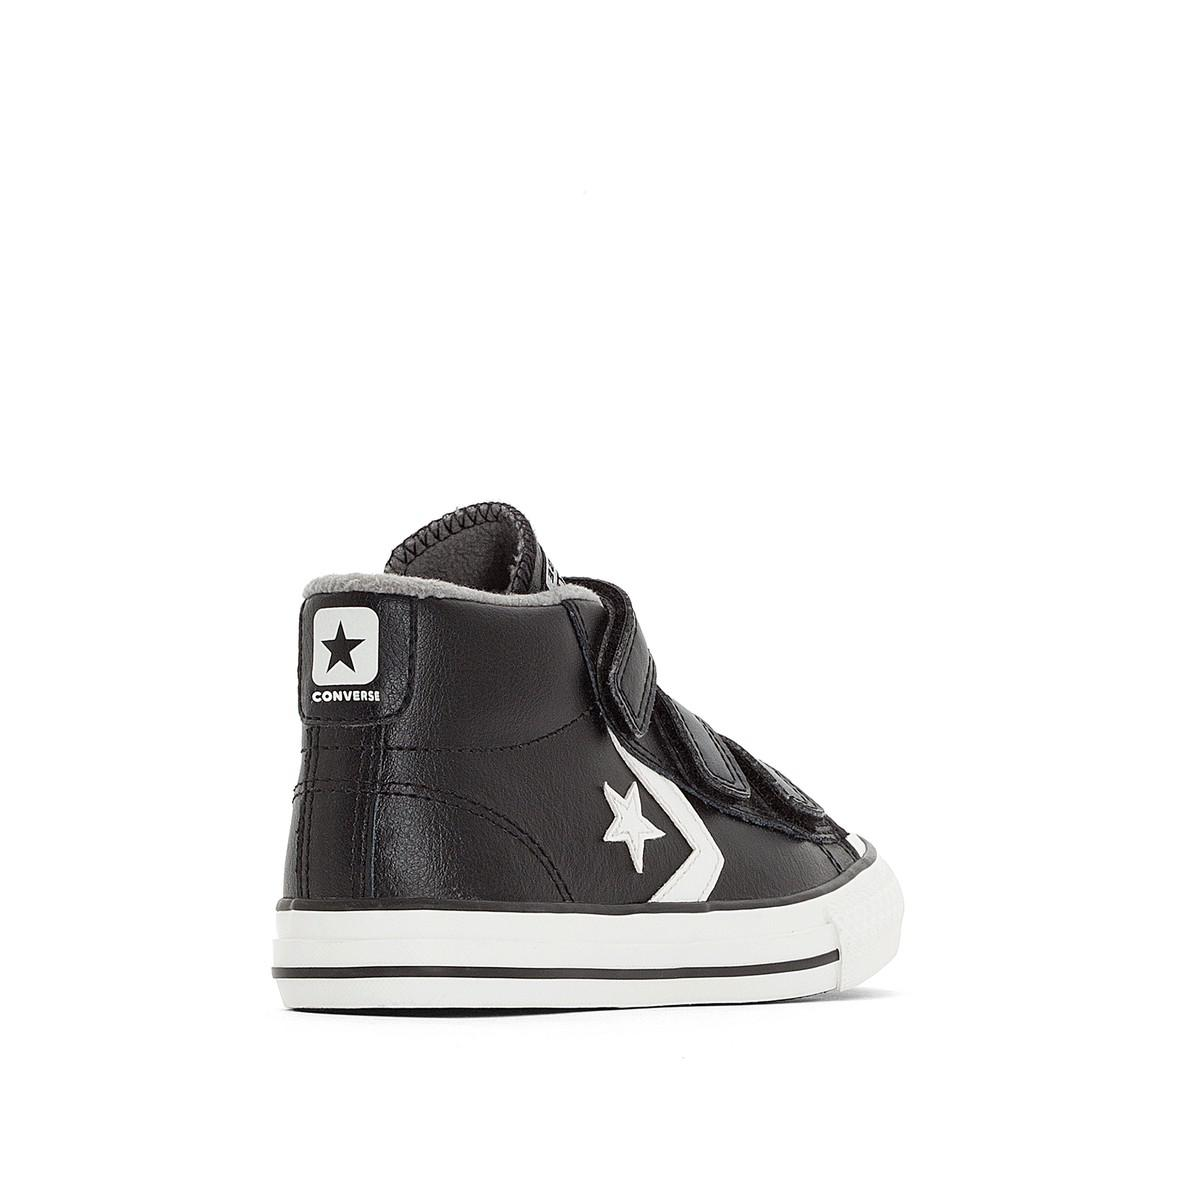 Lyst - Converse Star Player 3v Mid Leather Mid Top Trainers in Black ... edf42b55b